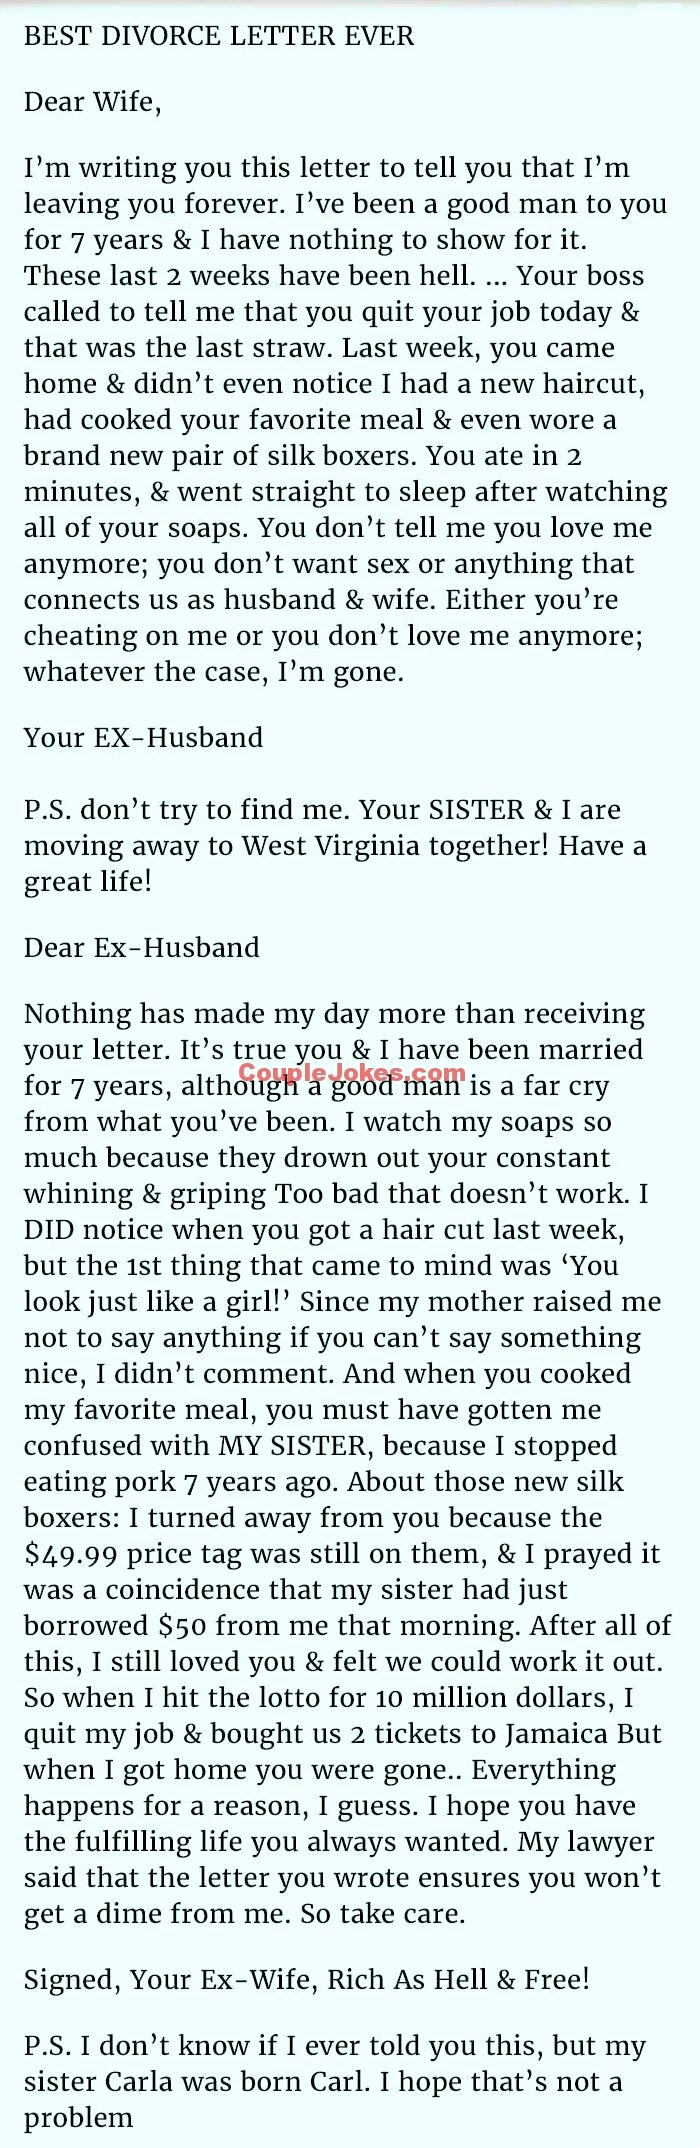 Separation Letter to Husband Lovely This Man Cheated On His Wife & Blamed Her for It but Her Response is Priceless